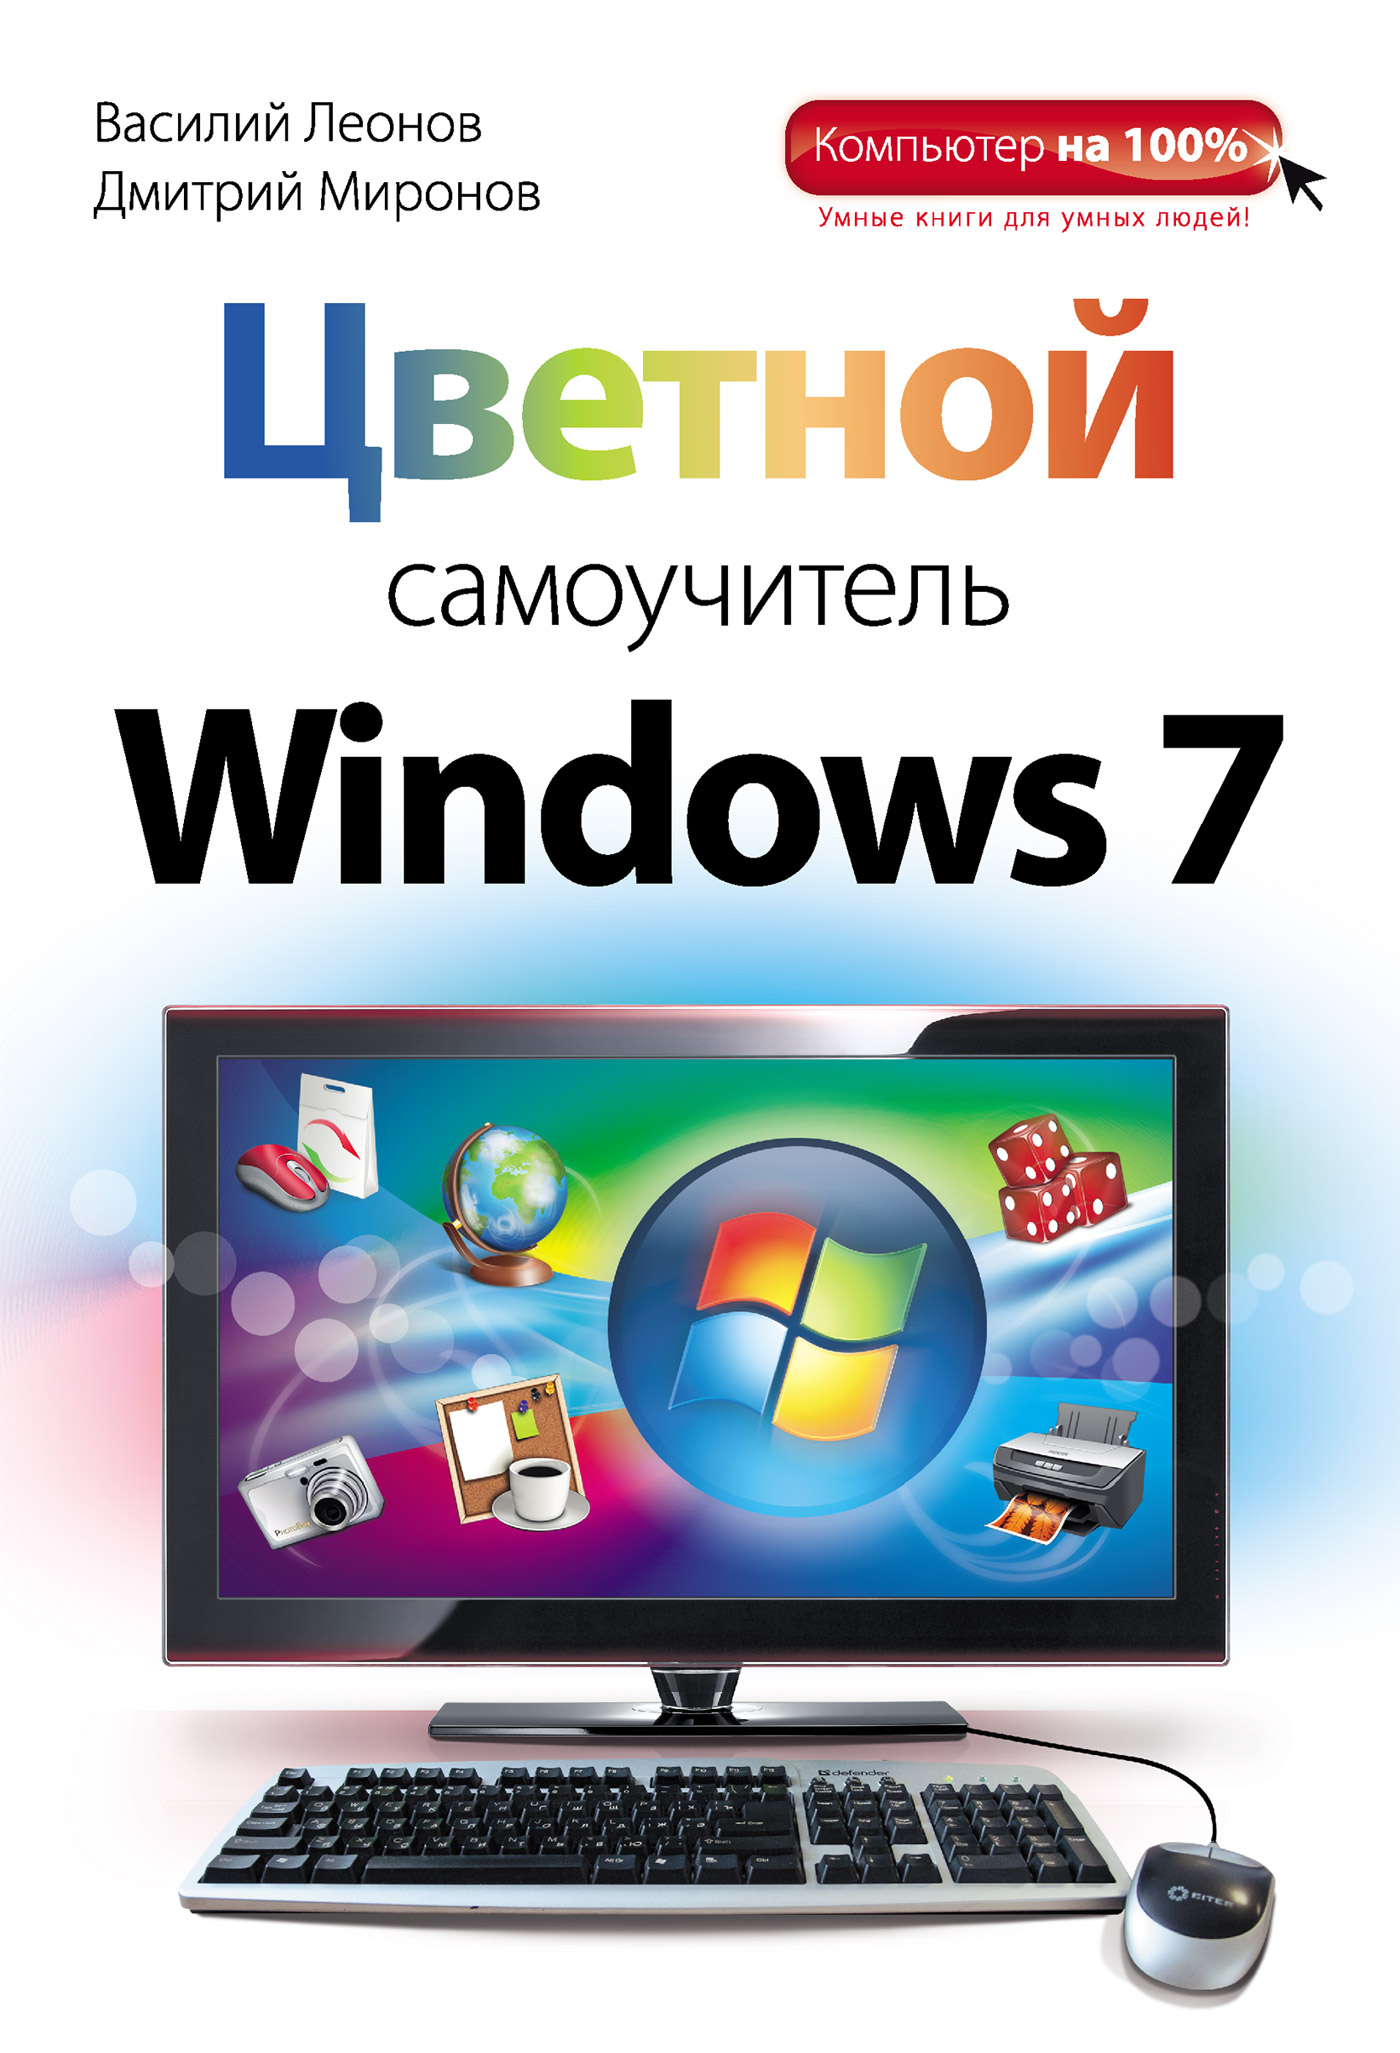 Василий Леонов Цветной самоучитель Windows 7 ноутбук и windows 7